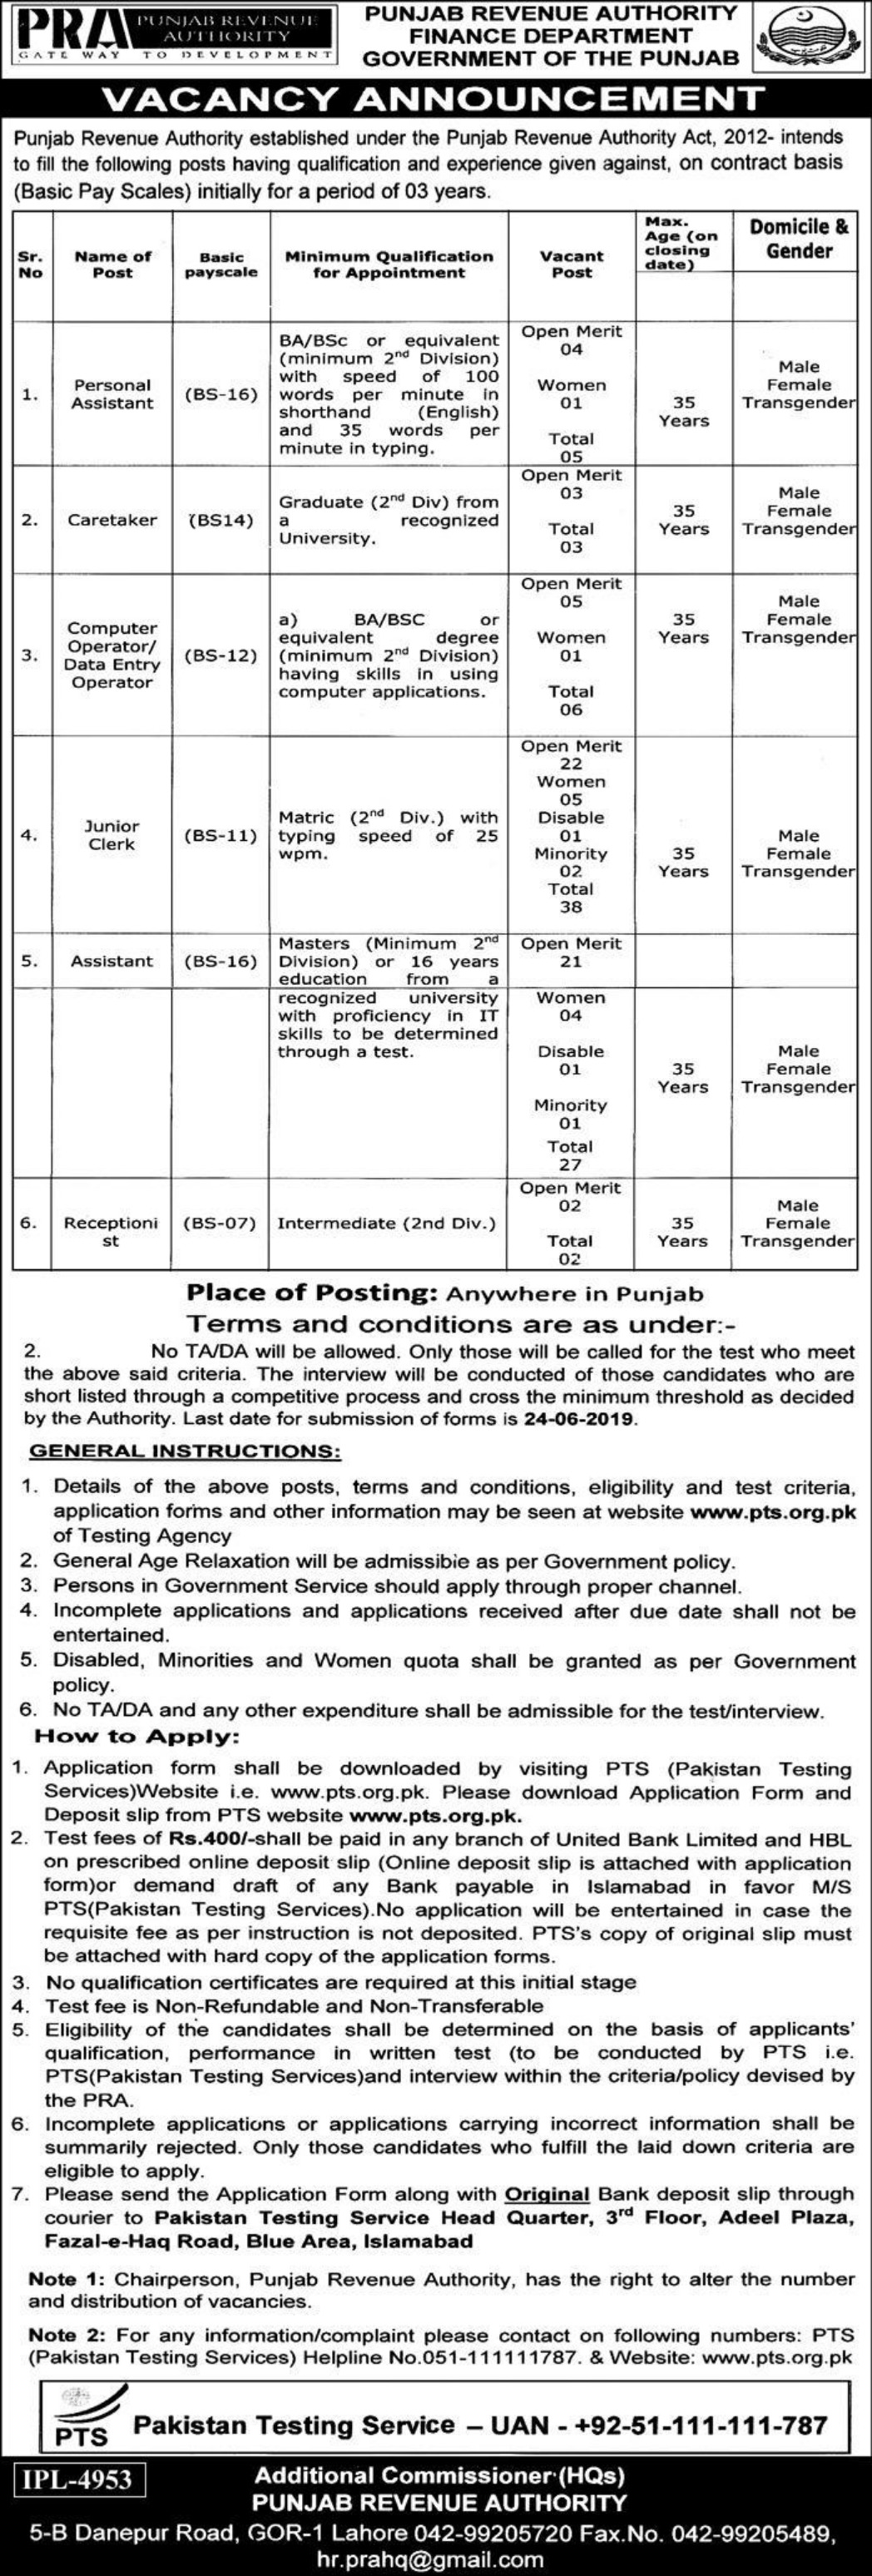 Punjab Revenue Authority PRA Jobs 2019 Finance Department through PTS